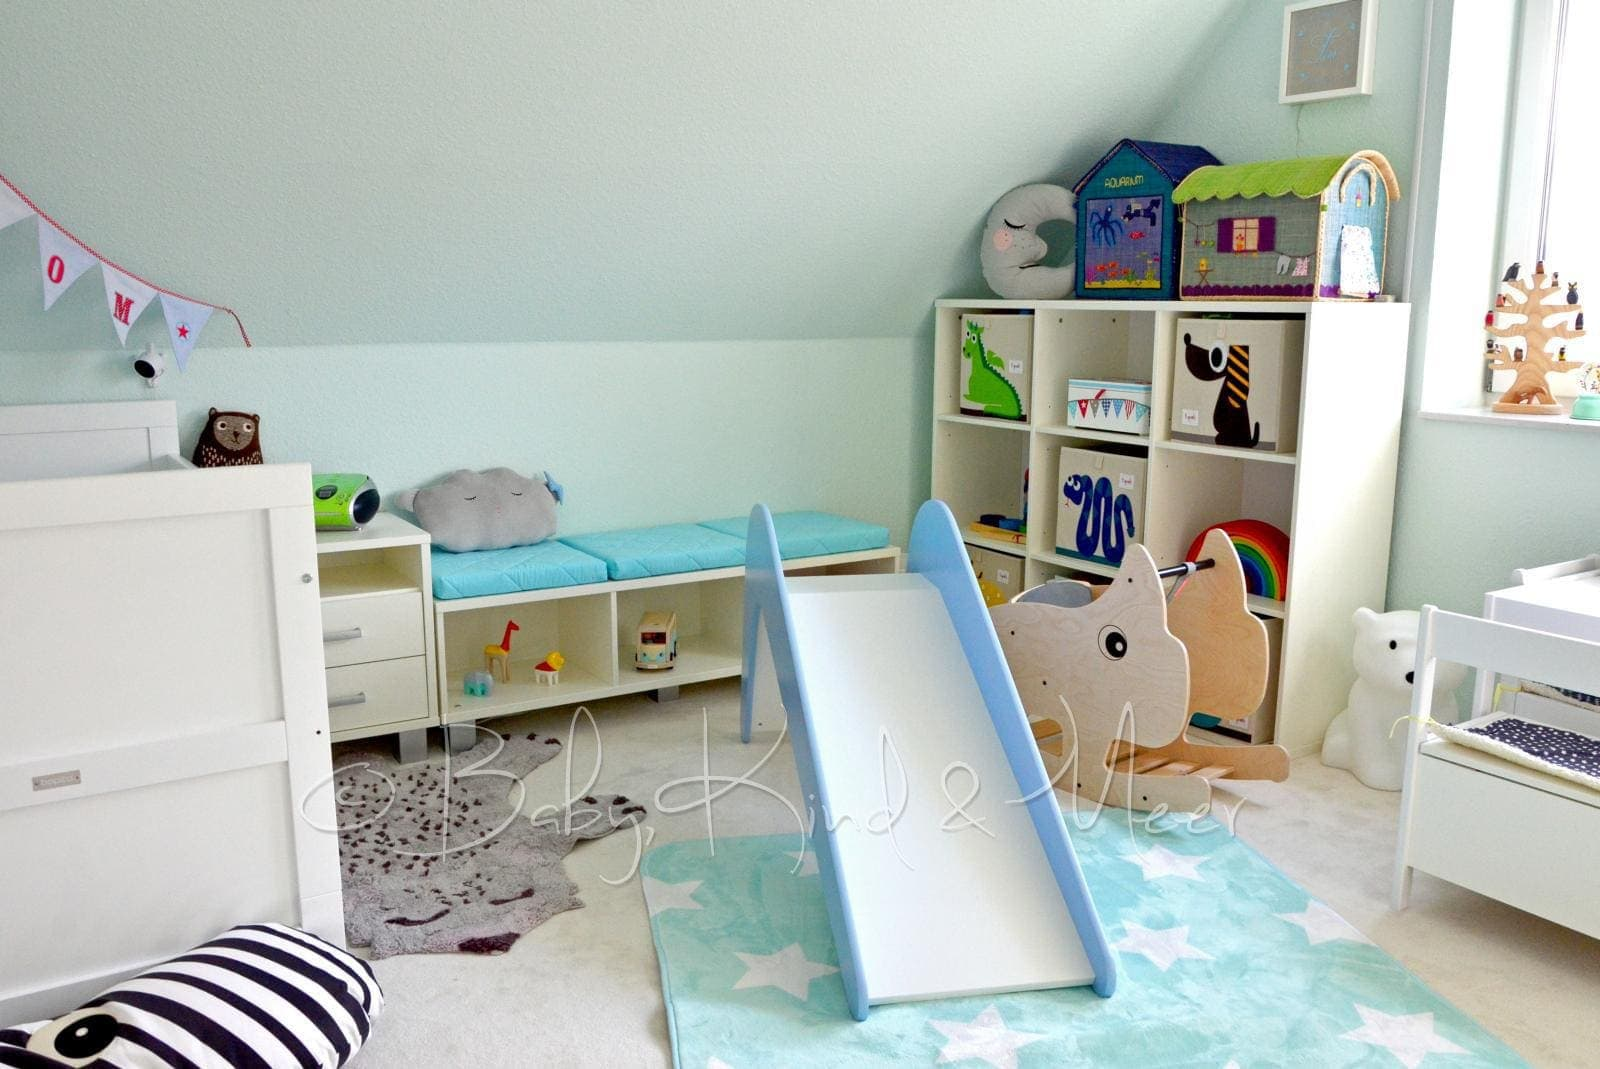 toms kinderzimmer roomtour family living interior baby kind und meer. Black Bedroom Furniture Sets. Home Design Ideas